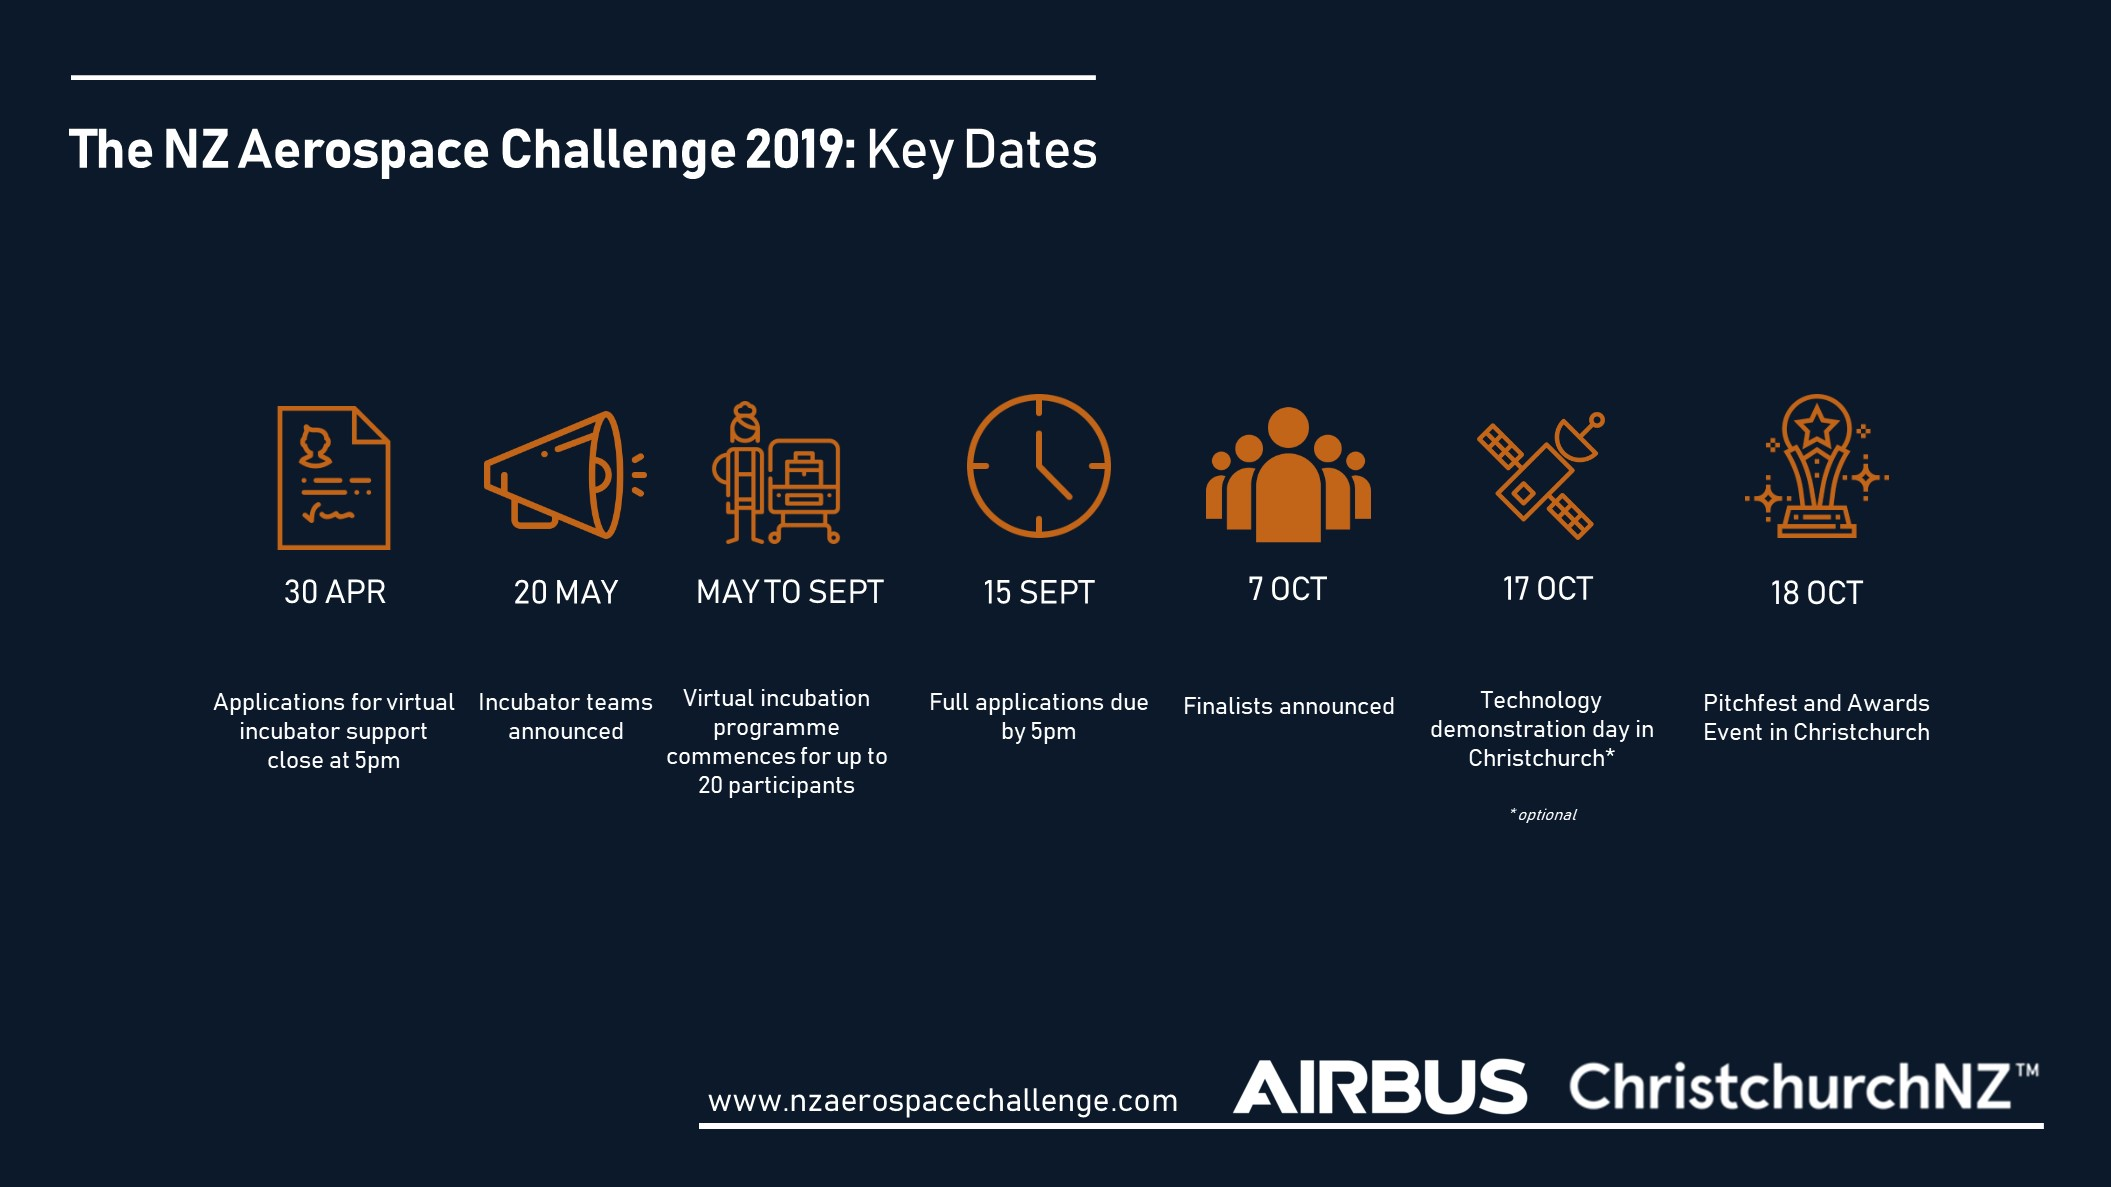 aerospacechallengeinfographic8.jpg